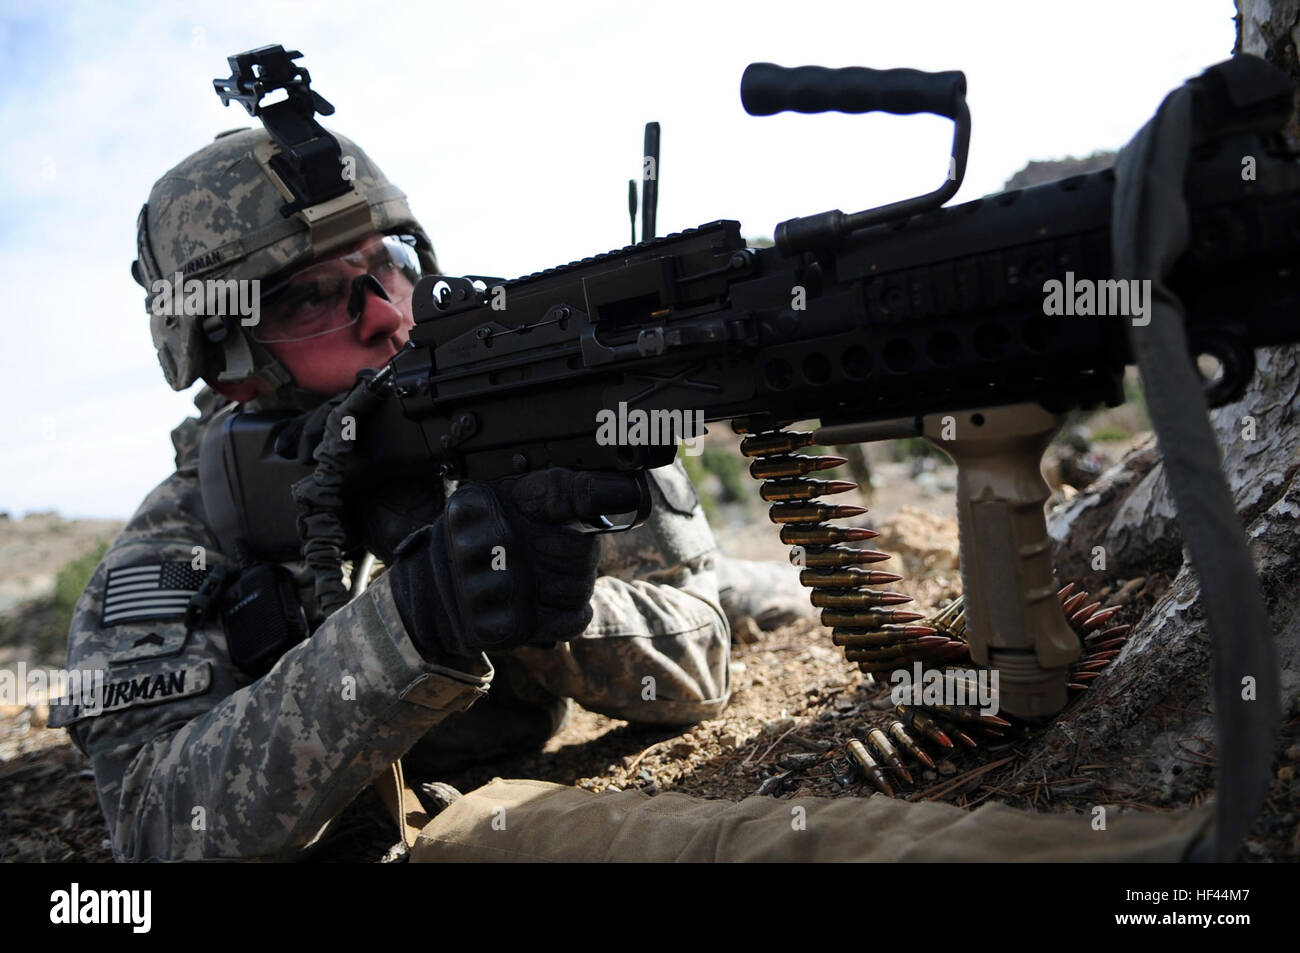 U.S. Army Sgt. Joshua Thurman of Alpha Troop, 1st Squadron, 33rd Cavalry Regiment, 3rd Brigade, 101st Airborne Divison, - Stock Image